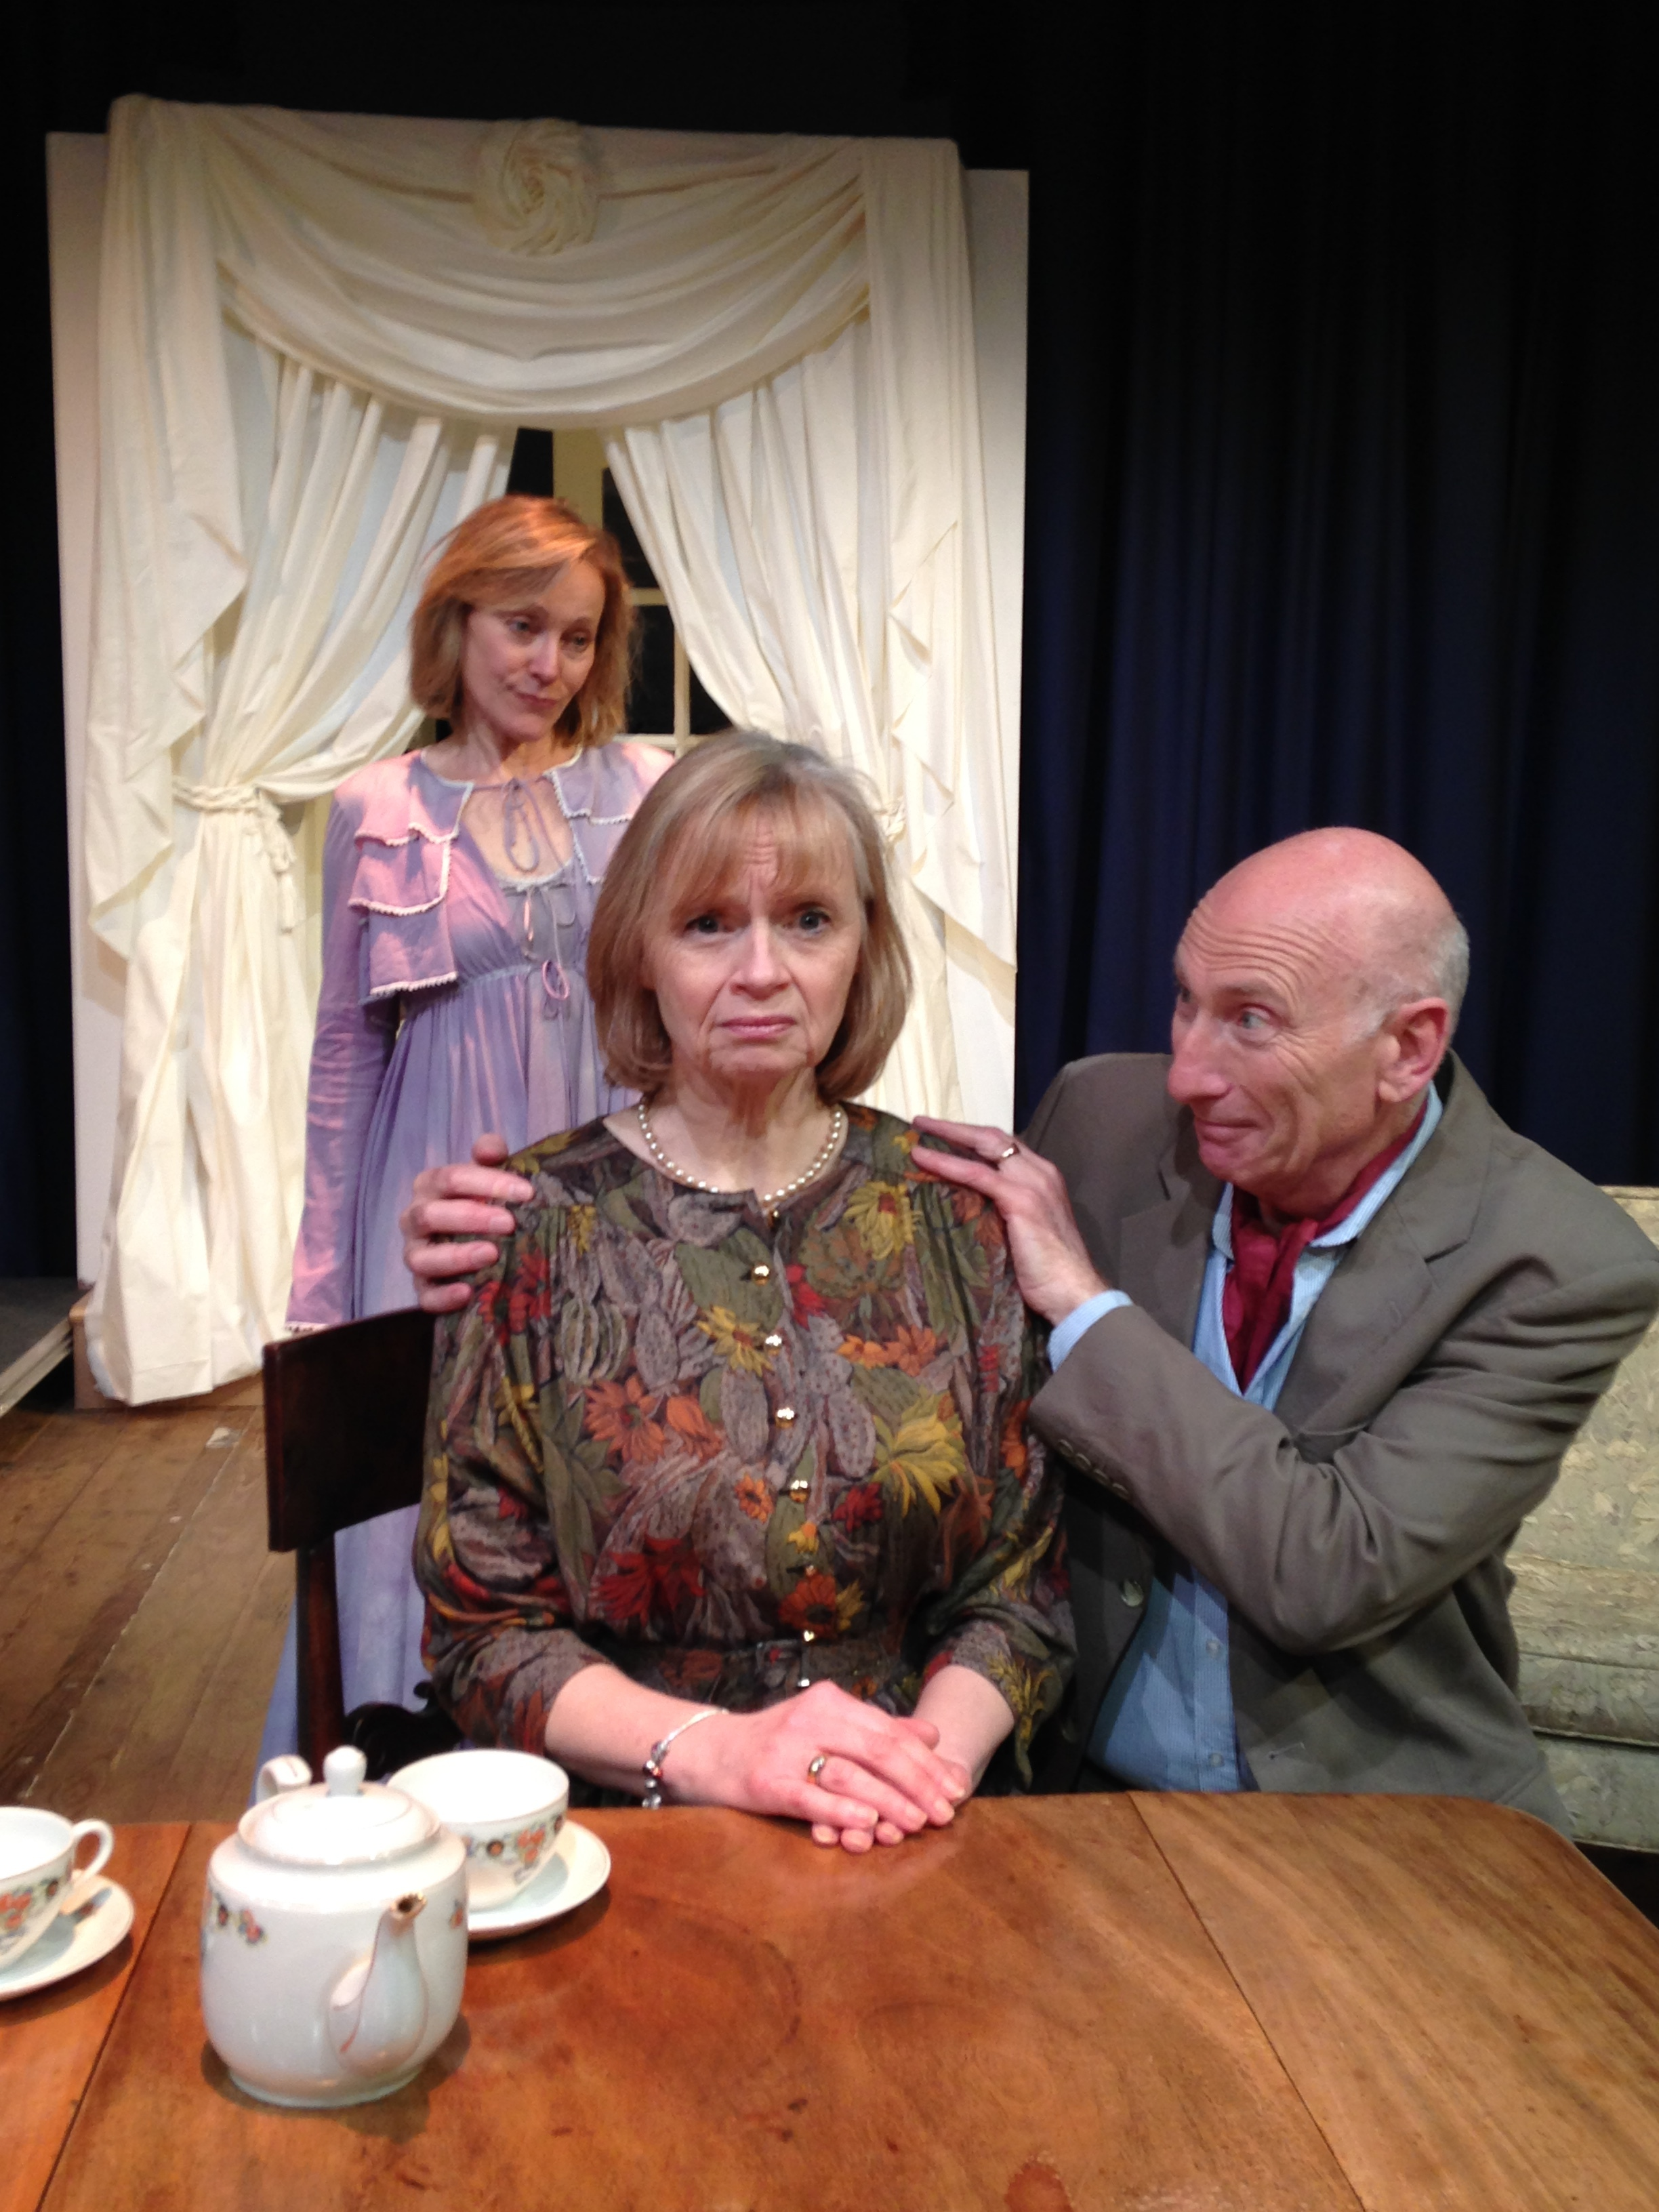 From left - Elvira (played by Caroline Groom) Ruth (played by Barabara Ingledew) and Charles (played by Lewis Cowen).jpg